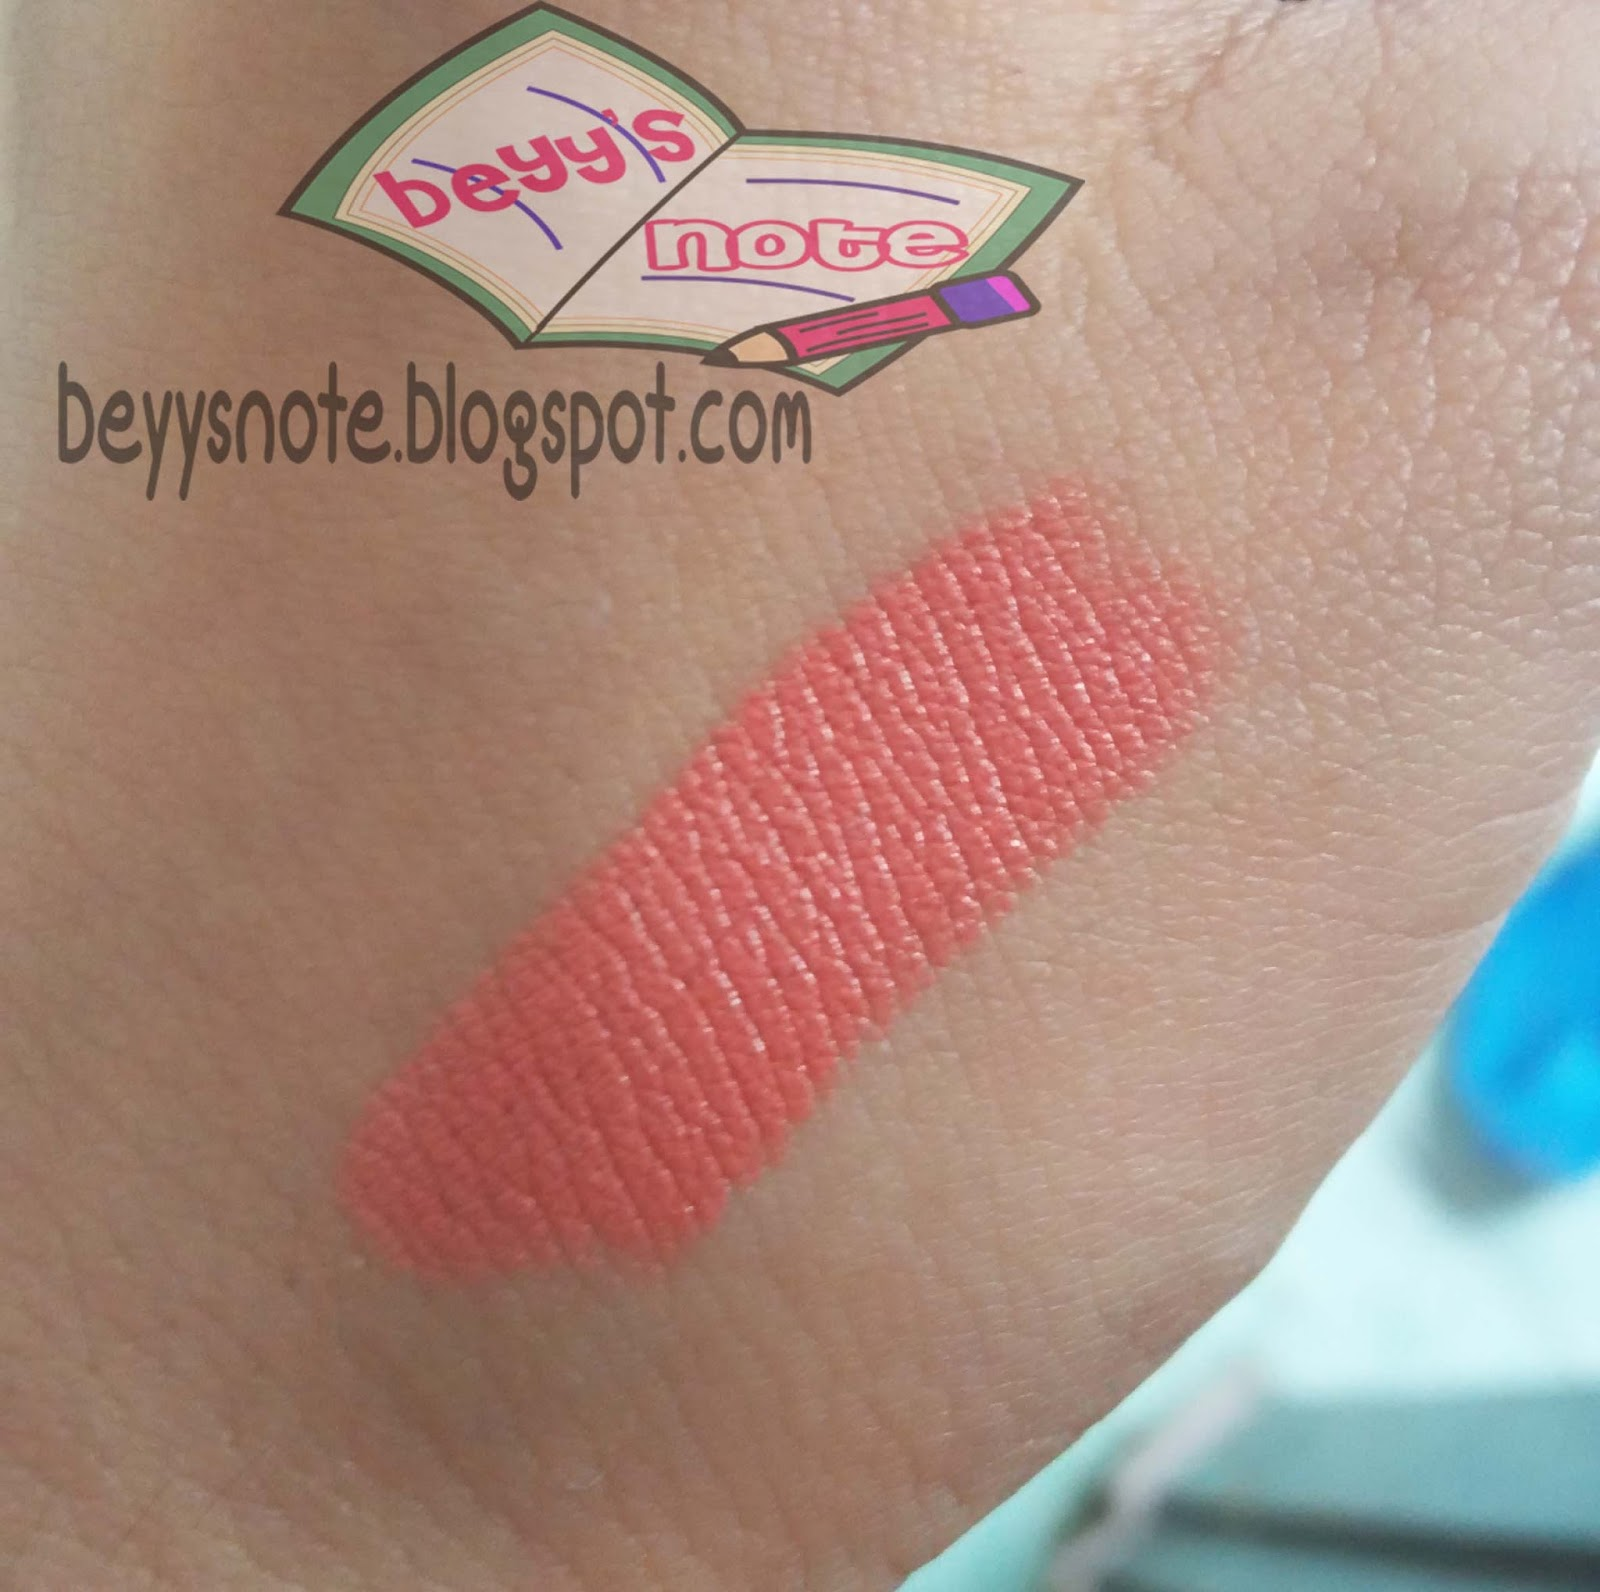 Lipstik Matte Wardah No 5 The Art Of Beauty Lip Cream 17 Review Beyy S Note